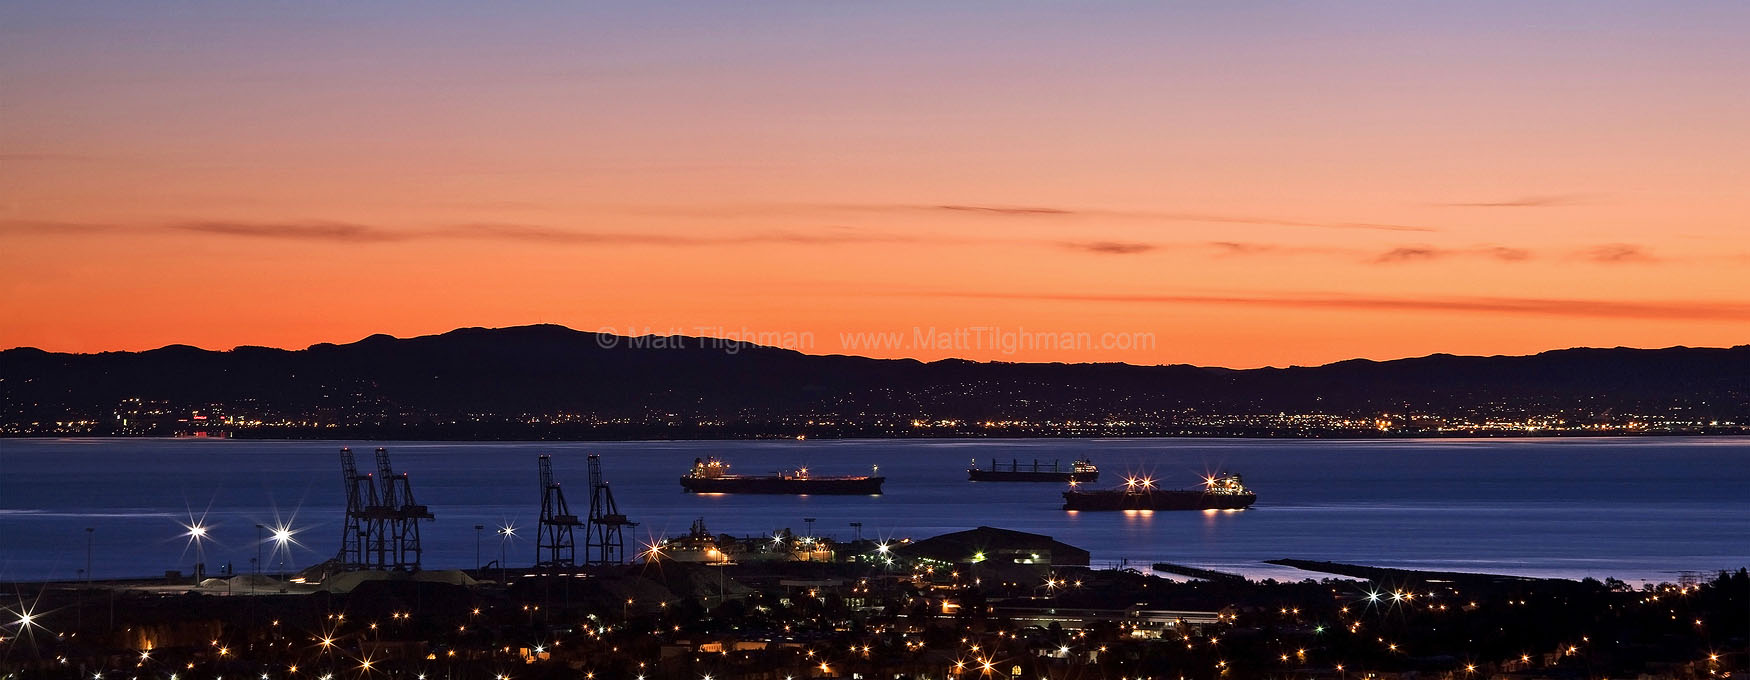 Fine art stock photograph from California's San Francisco Bay. The bay will soon be crowded with recreational boaters, but at dawn it's dominated by industry.